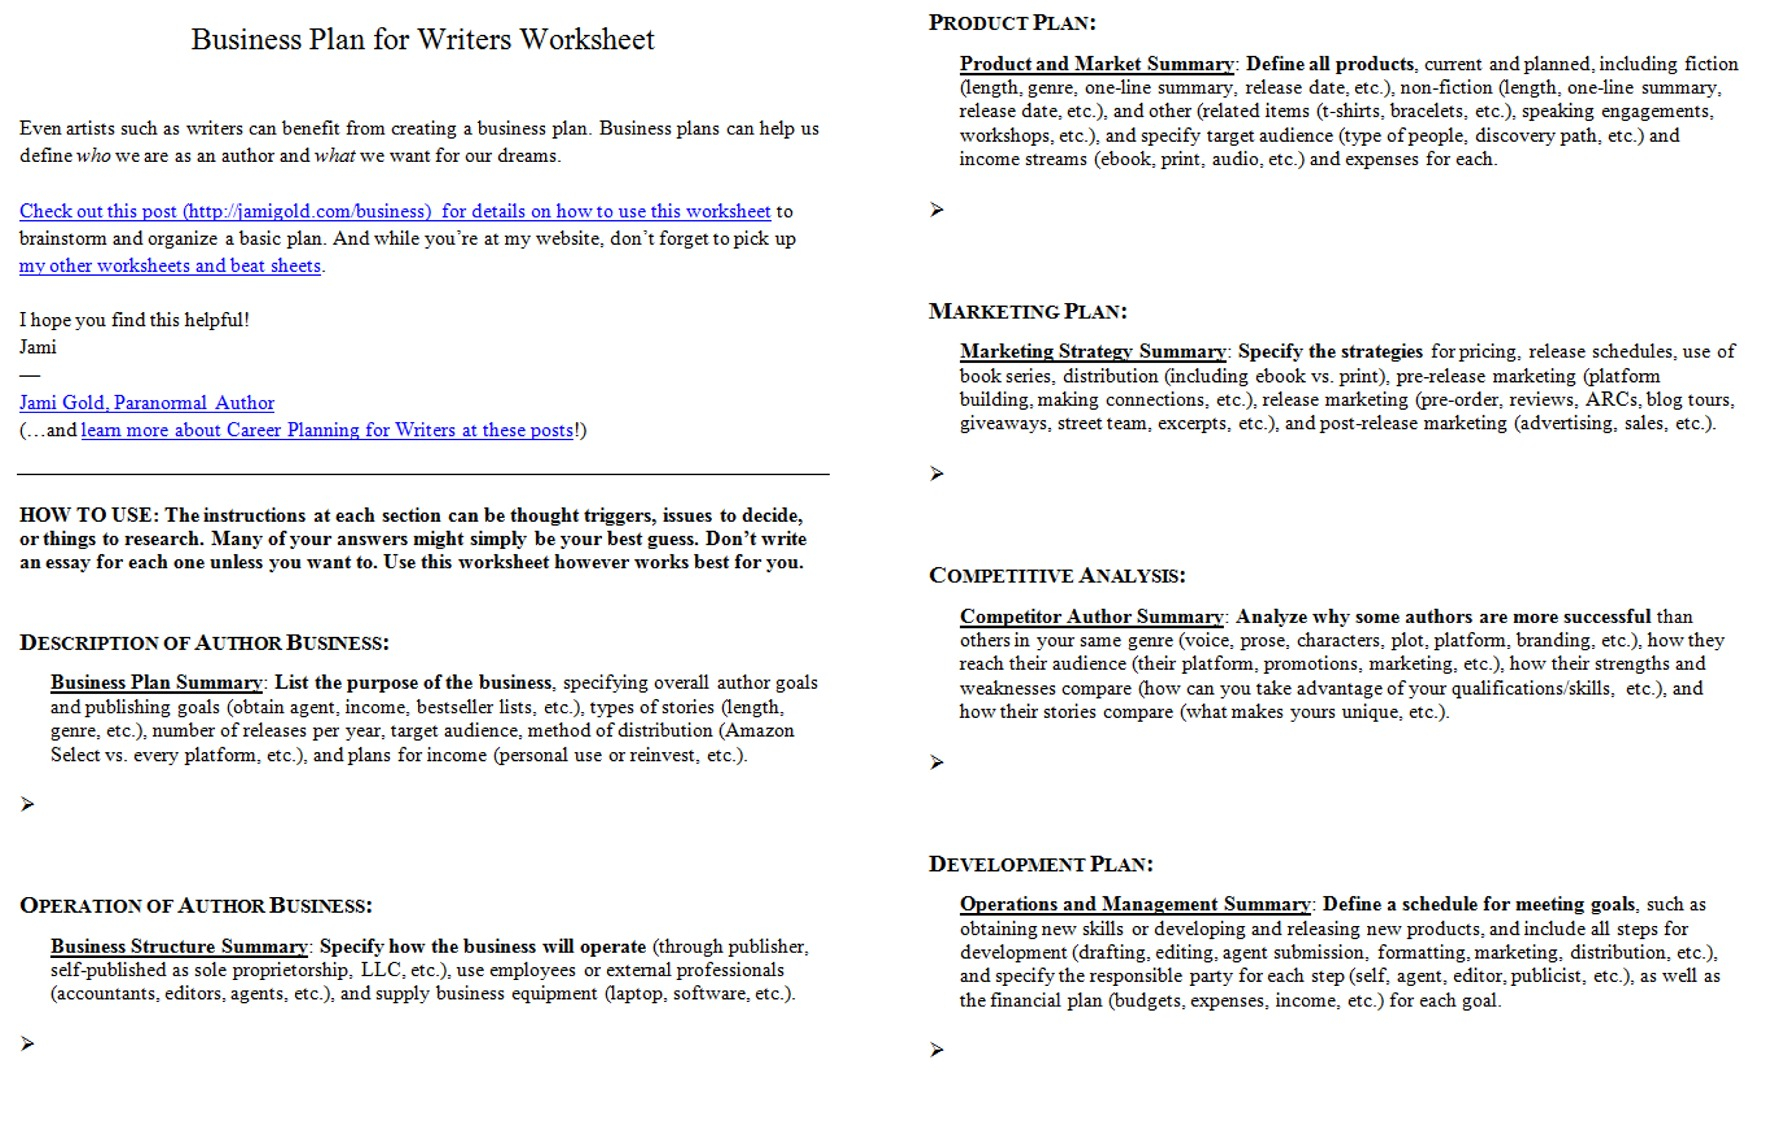 Weirdmailus  Winning Worksheets For Writers  Jami Gold Paranormal Author With Inspiring Screen Shot Of Both Pages Of The Business Plan For Writers Worksheet With Easy On The Eye Kindergarten Reading Worksheets Sight Words Also Comparing Fractions With Like Numerators Worksheet In Addition Rhyming Word Pairs Worksheet Answers And Slope Formula Worksheets As Well As Touch Math Free Worksheets Additionally Theoretical And Experimental Probability Worksheets From Jamigoldcom With Weirdmailus  Inspiring Worksheets For Writers  Jami Gold Paranormal Author With Easy On The Eye Screen Shot Of Both Pages Of The Business Plan For Writers Worksheet And Winning Kindergarten Reading Worksheets Sight Words Also Comparing Fractions With Like Numerators Worksheet In Addition Rhyming Word Pairs Worksheet Answers From Jamigoldcom